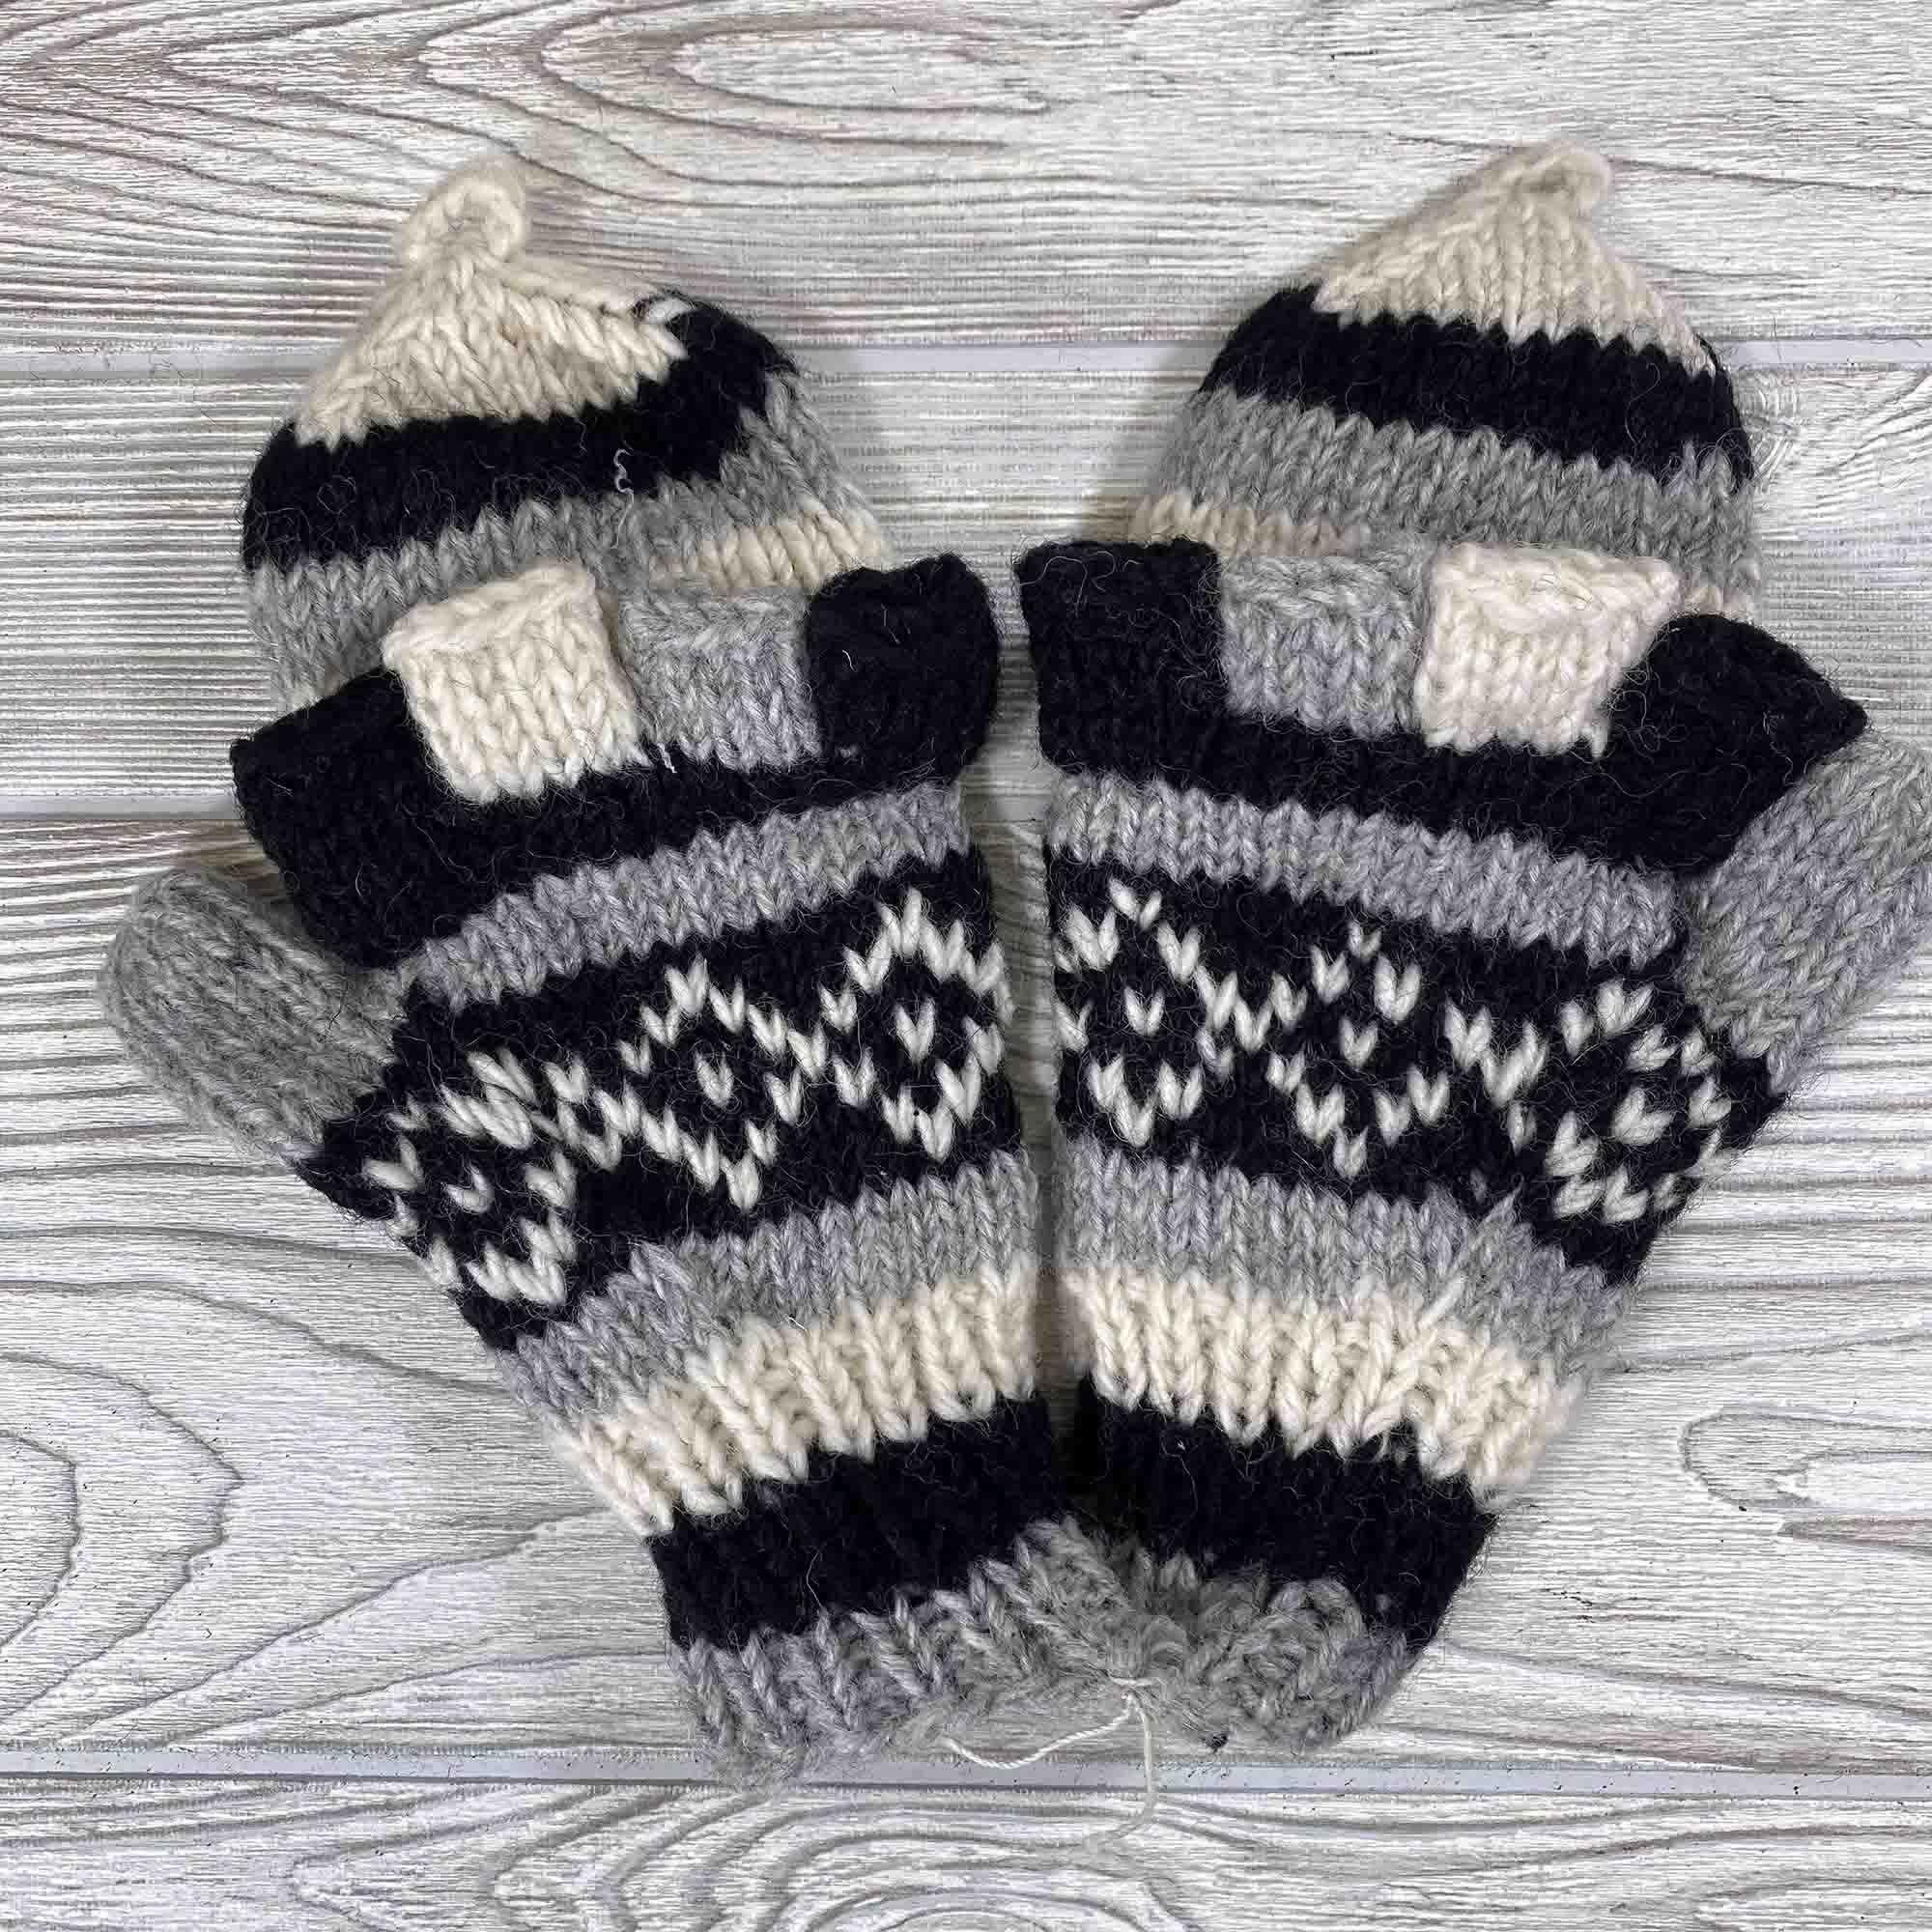 Handknit Wool Fingerless Mittens - Gray Black